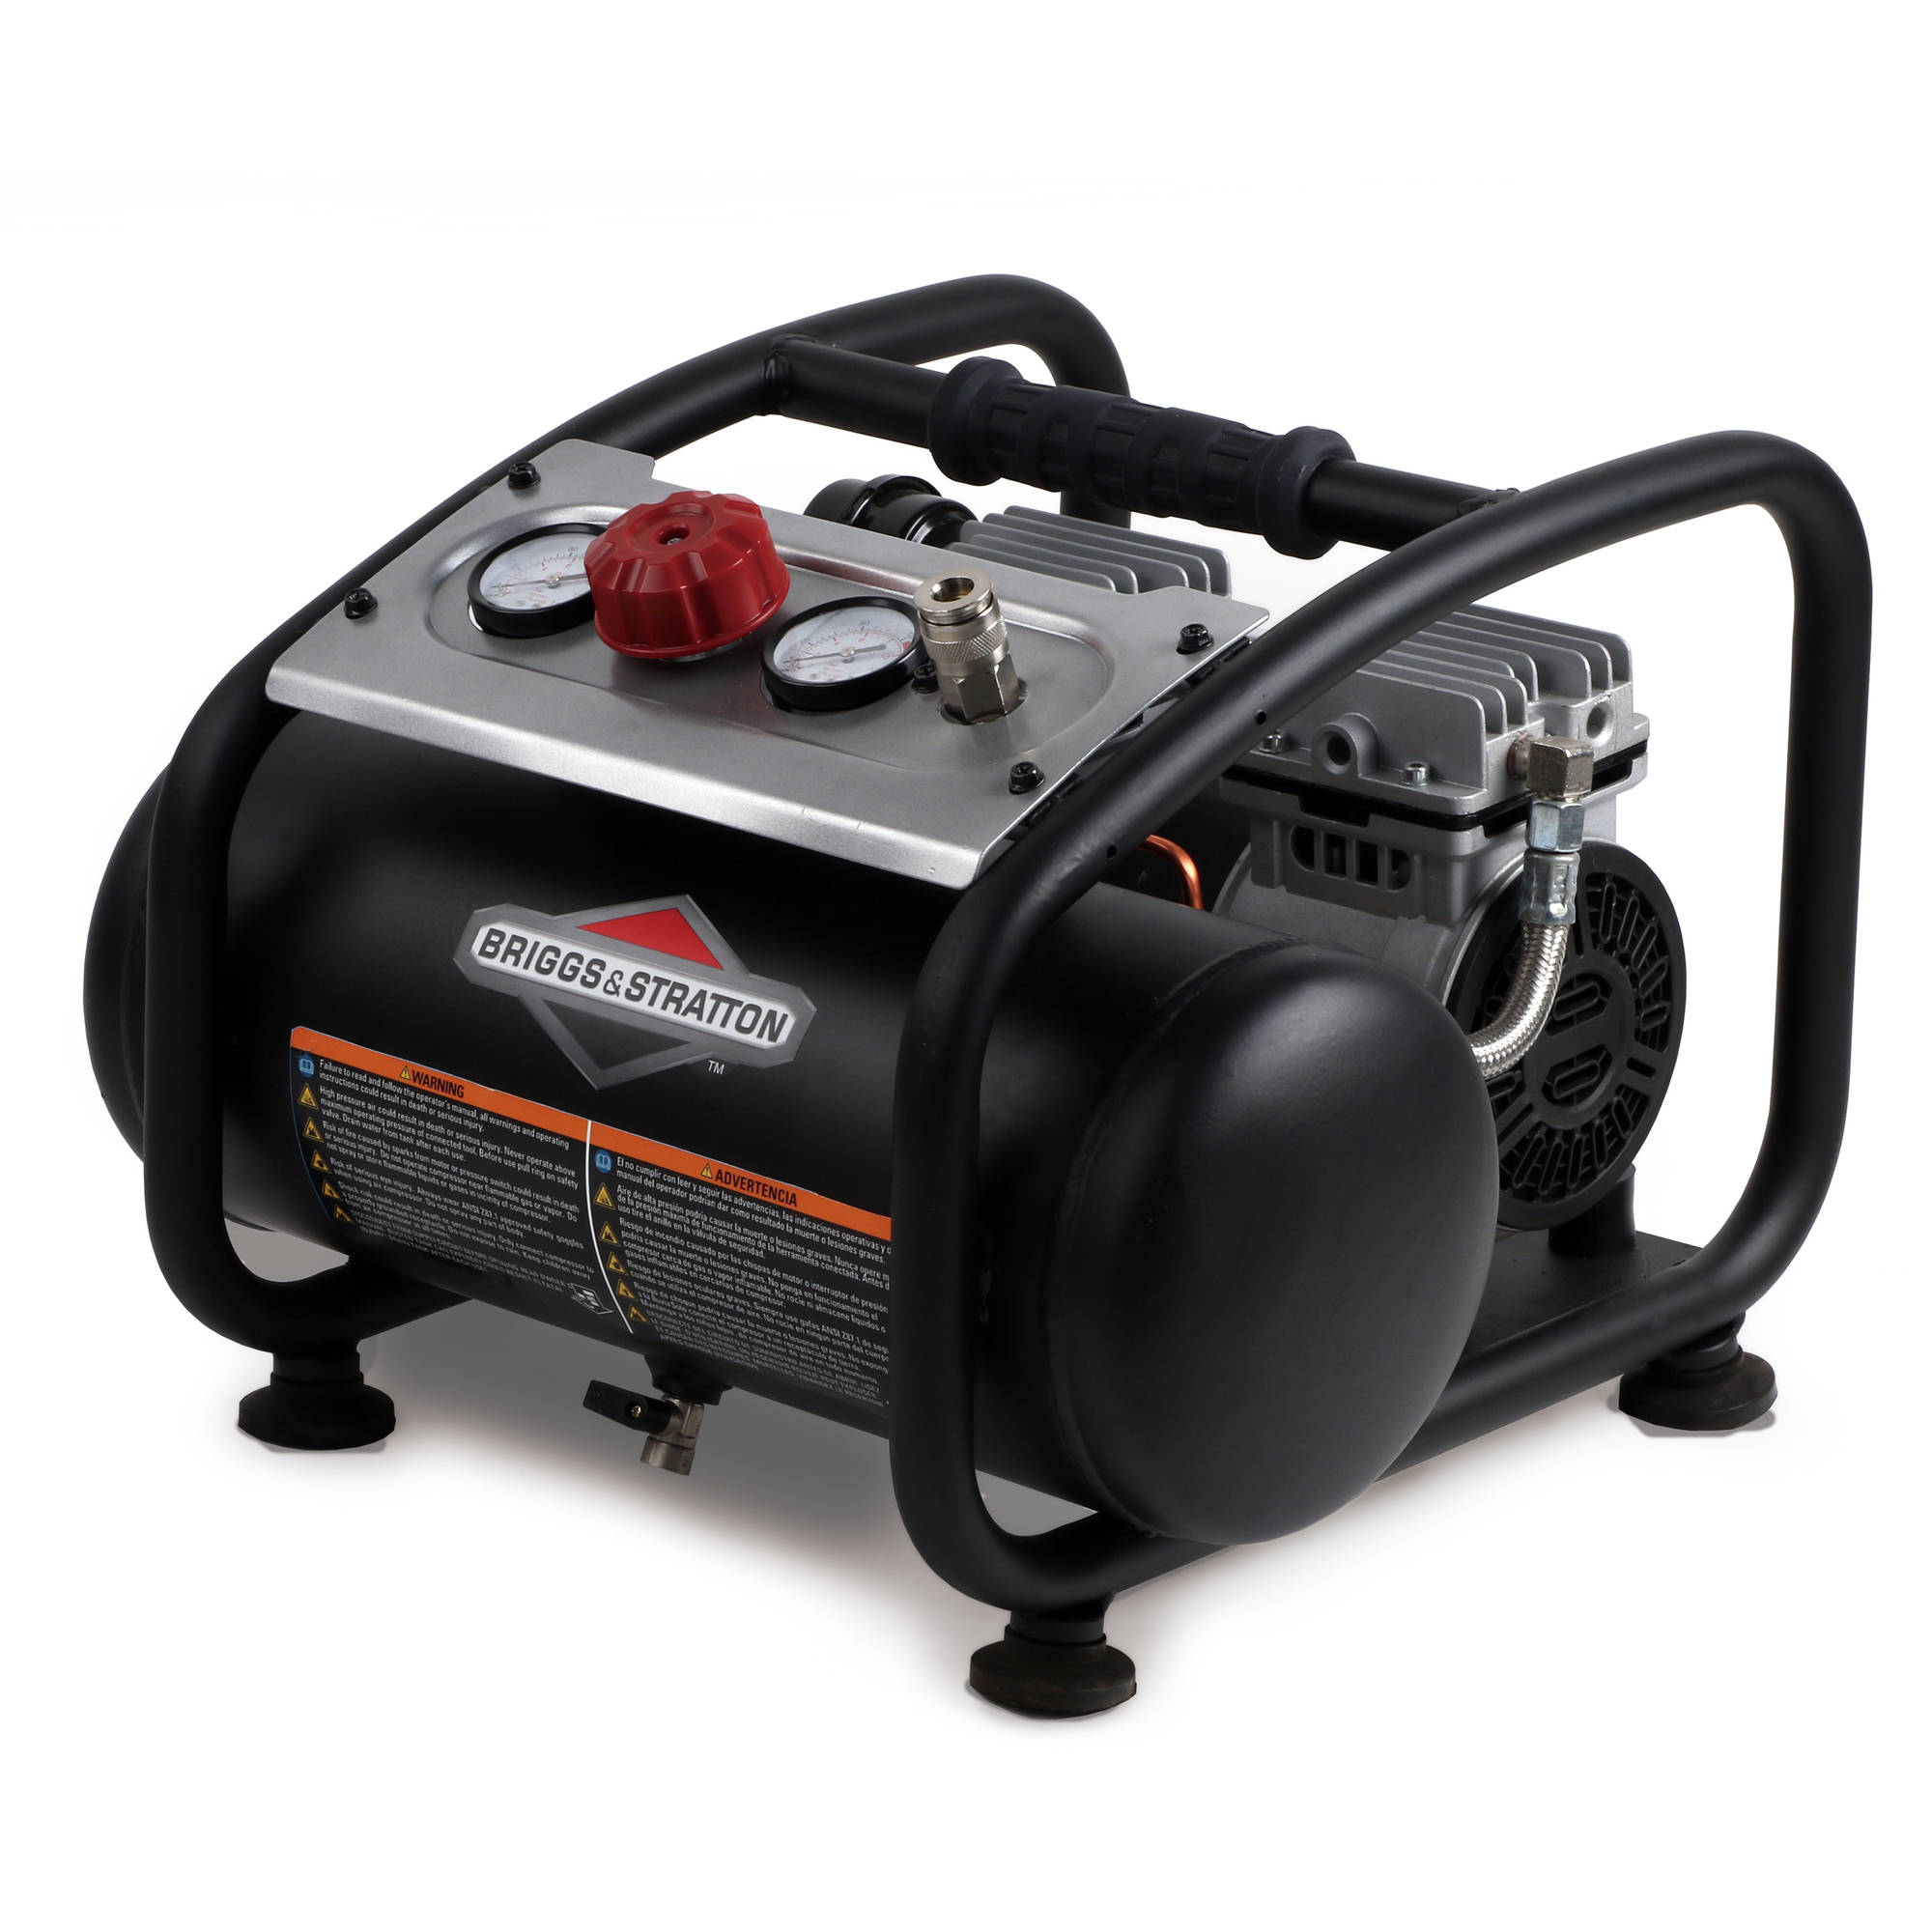 Briggs and Stratton 3-Gallon Air Compressor with Quiet Technology, 074027-00